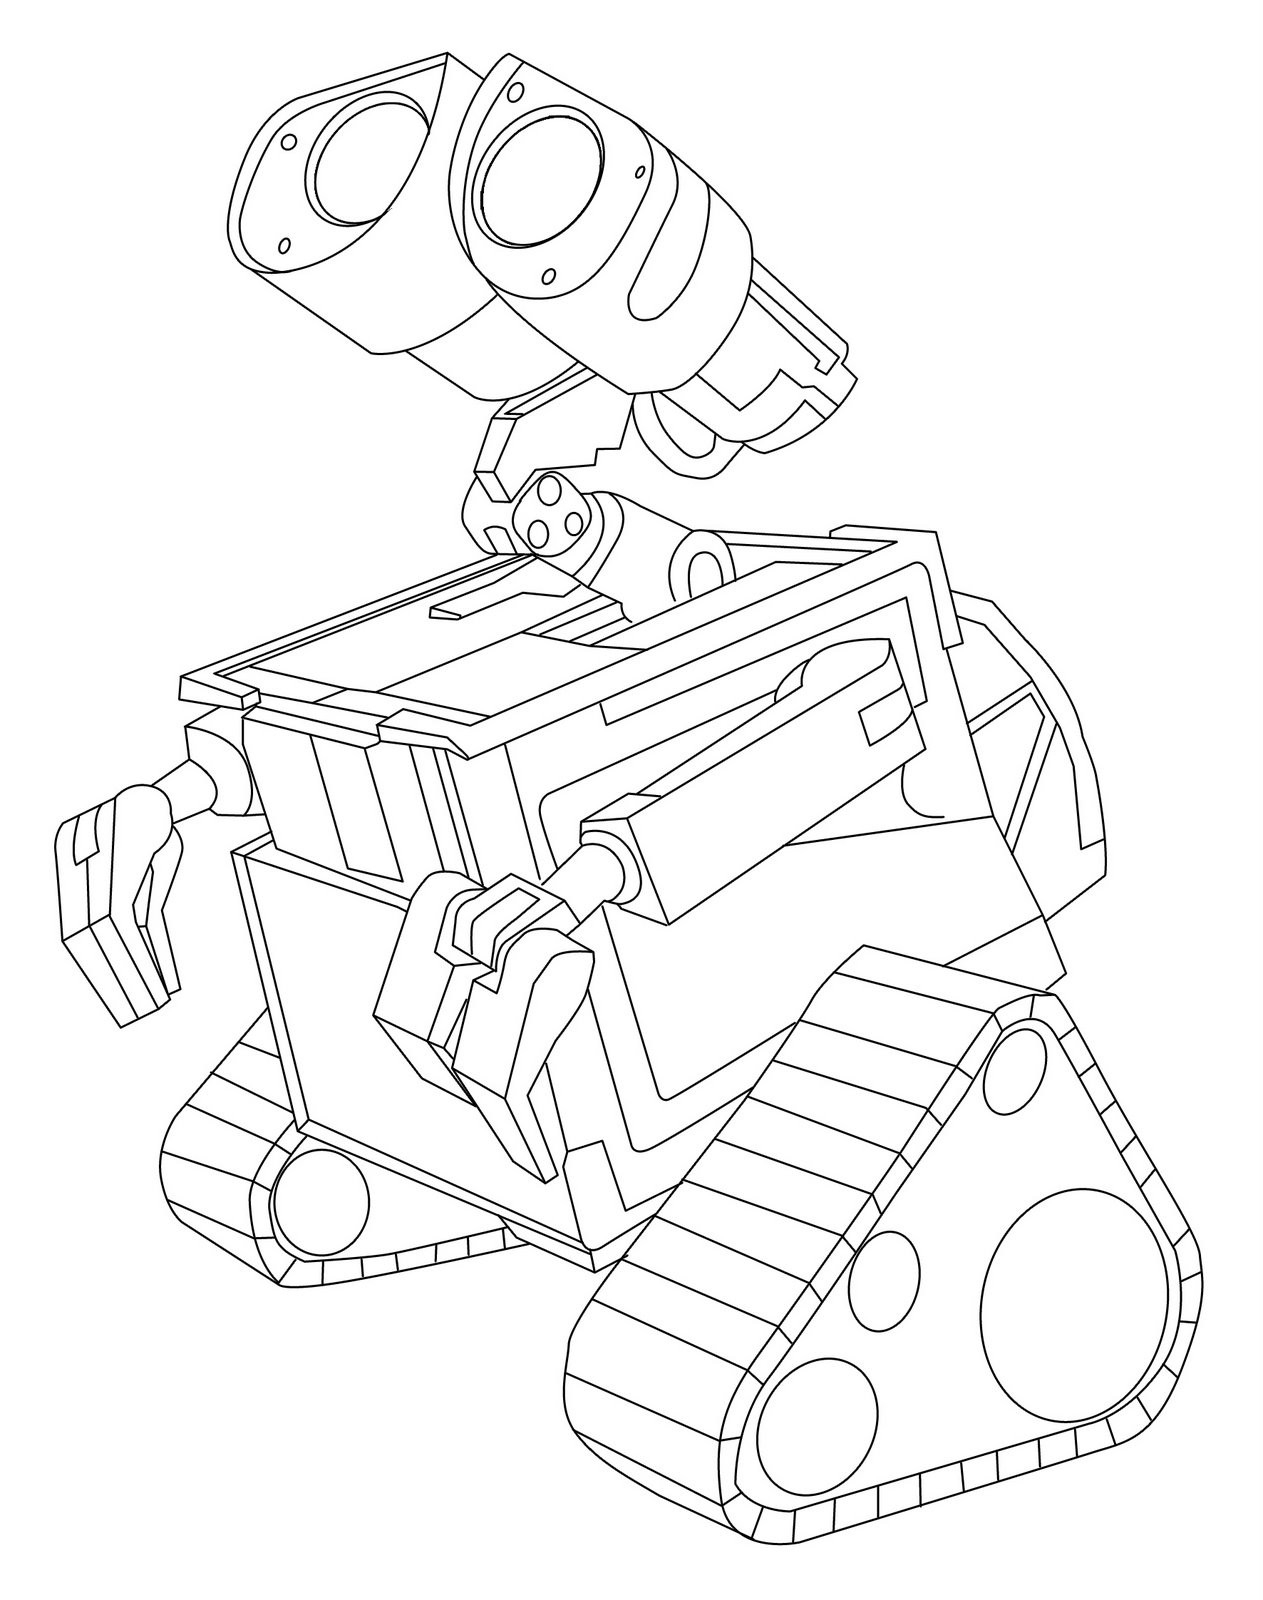 1263x1600 Cool Wall E And Eve Coloring Pages For Kids Awesome Other Lego